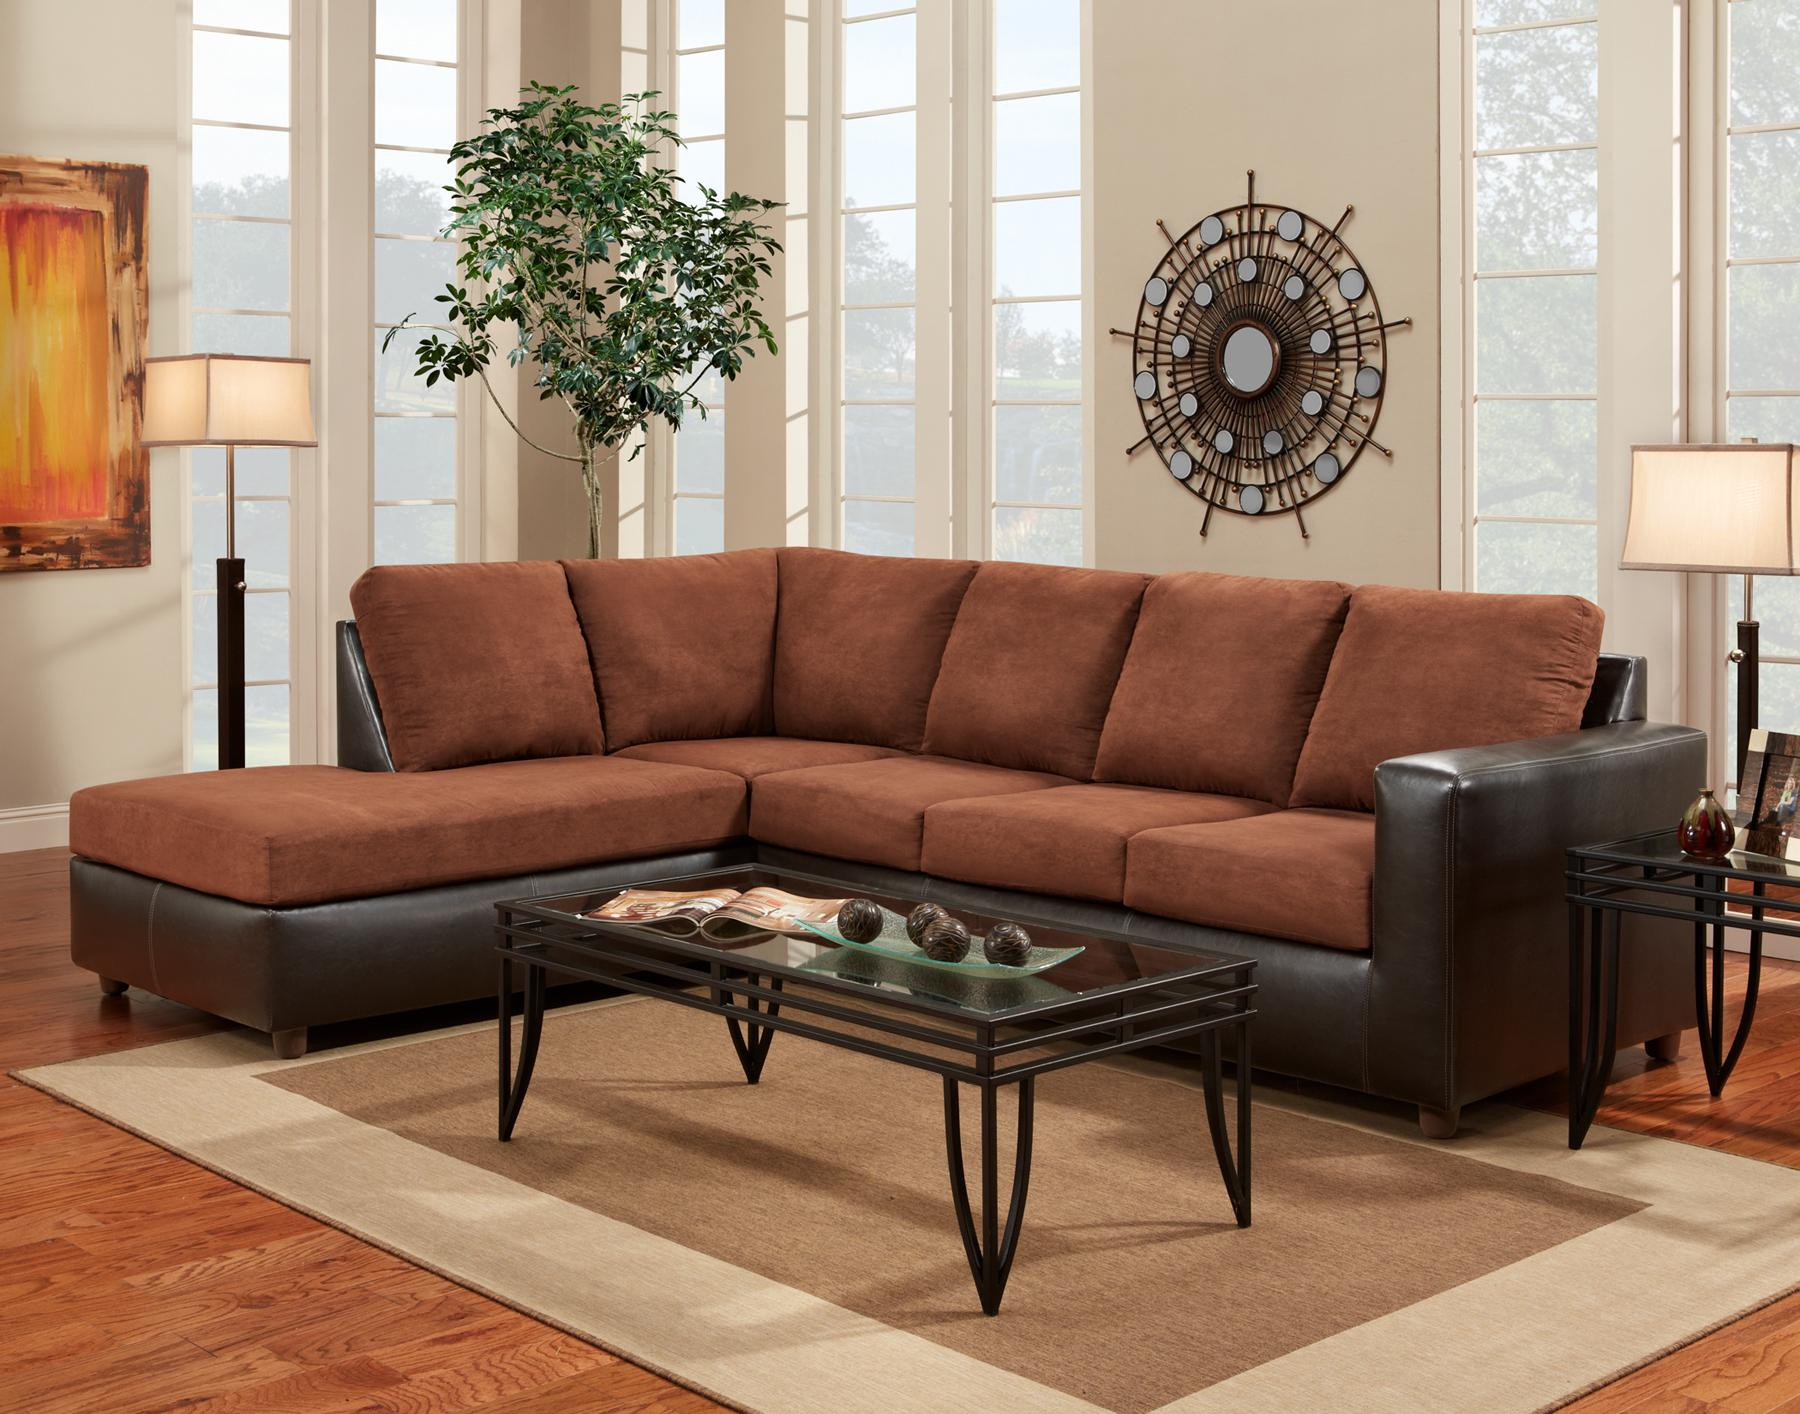 Sofa Sectional 3650 By Affordable Furniture Wilcox Furniture Sofa Sectional Corpus Christi